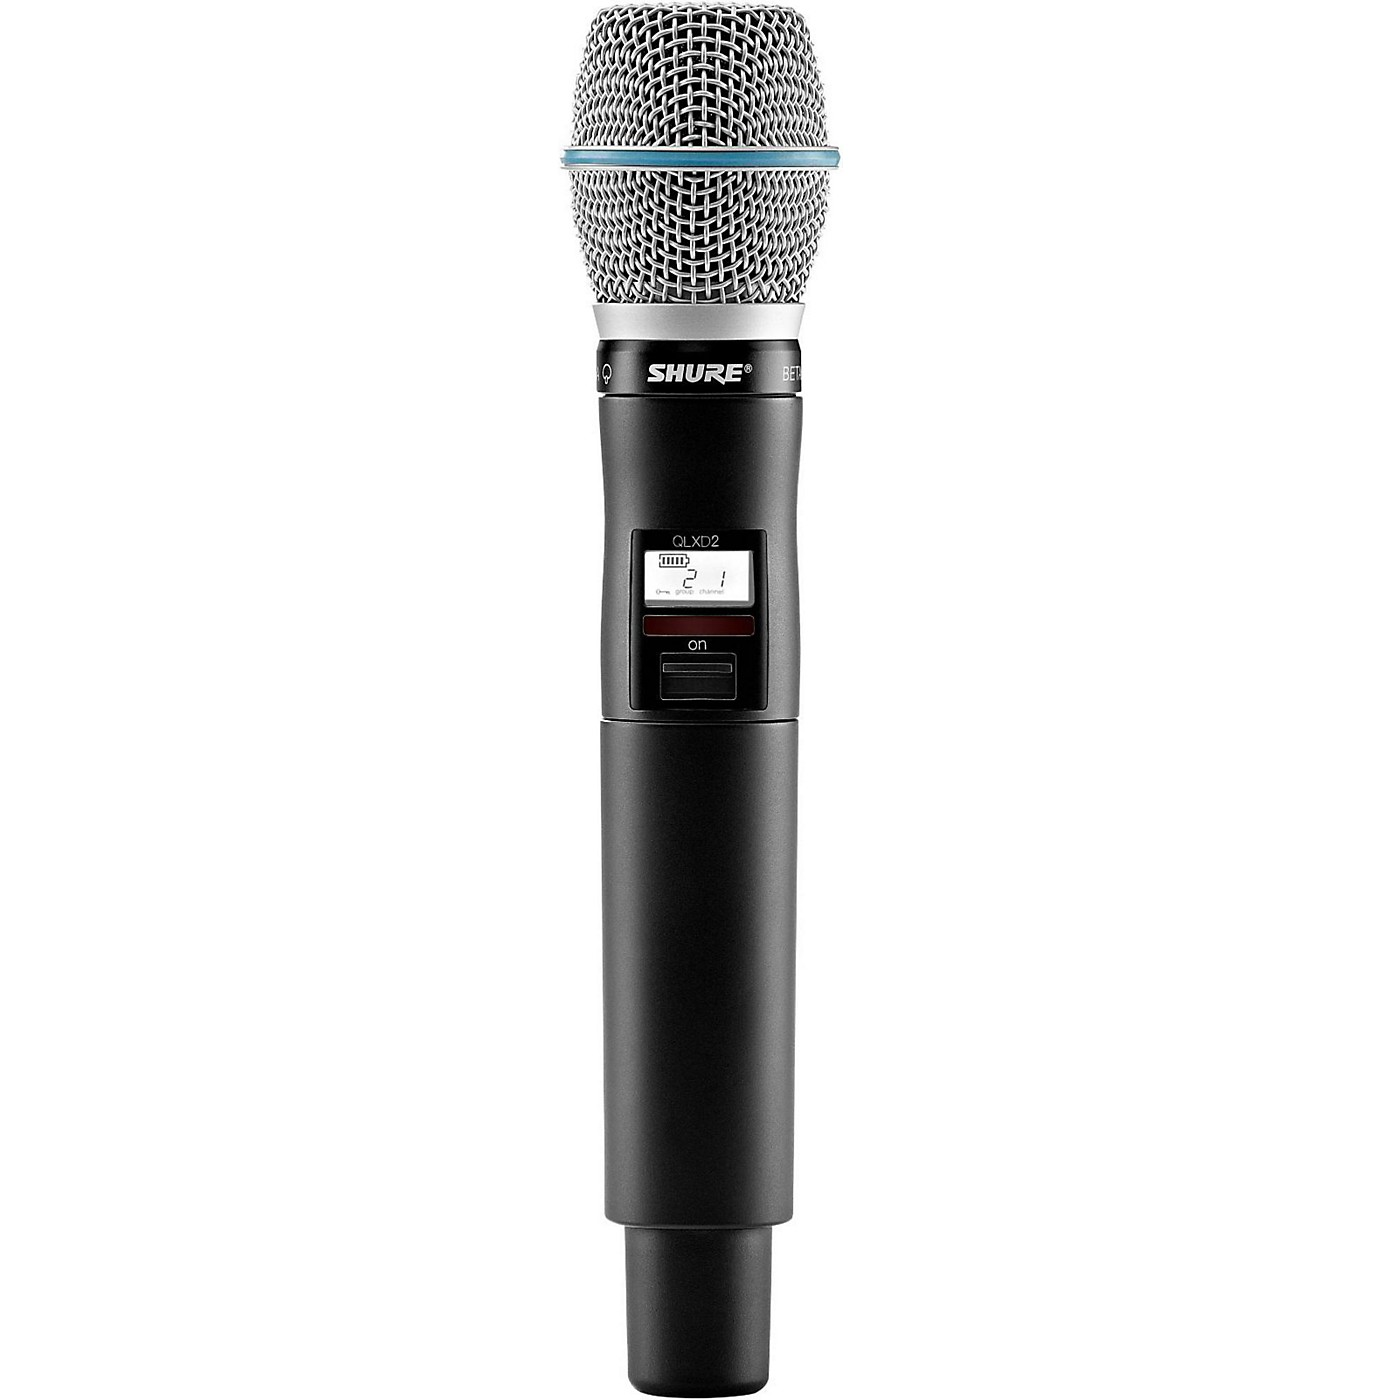 Shure Wireless Handheld Transmitter with Beta87A Microphone thumbnail